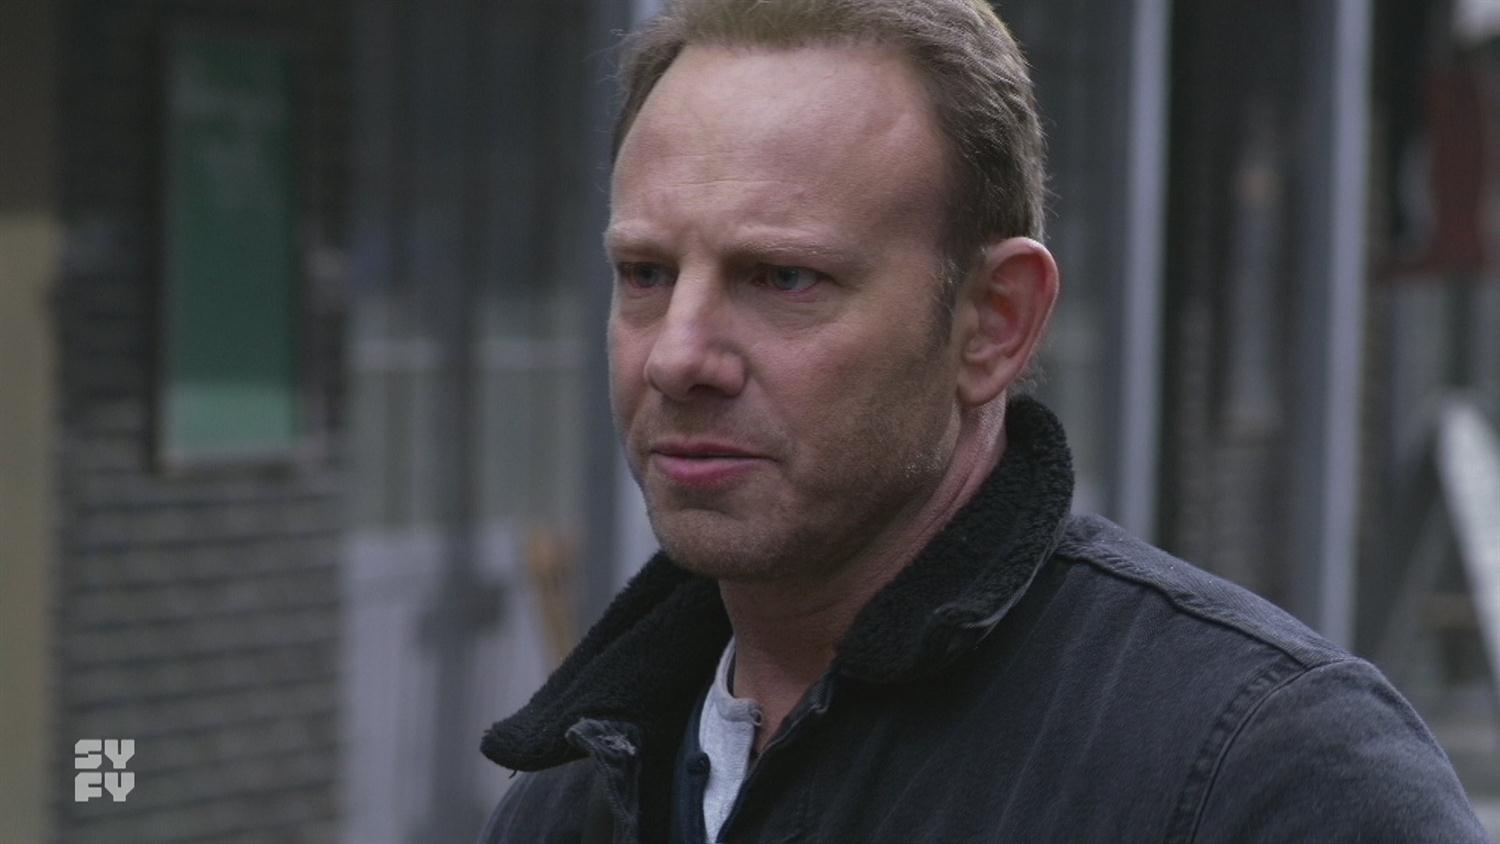 The Last Sharknado: It's About Time Official Trailer